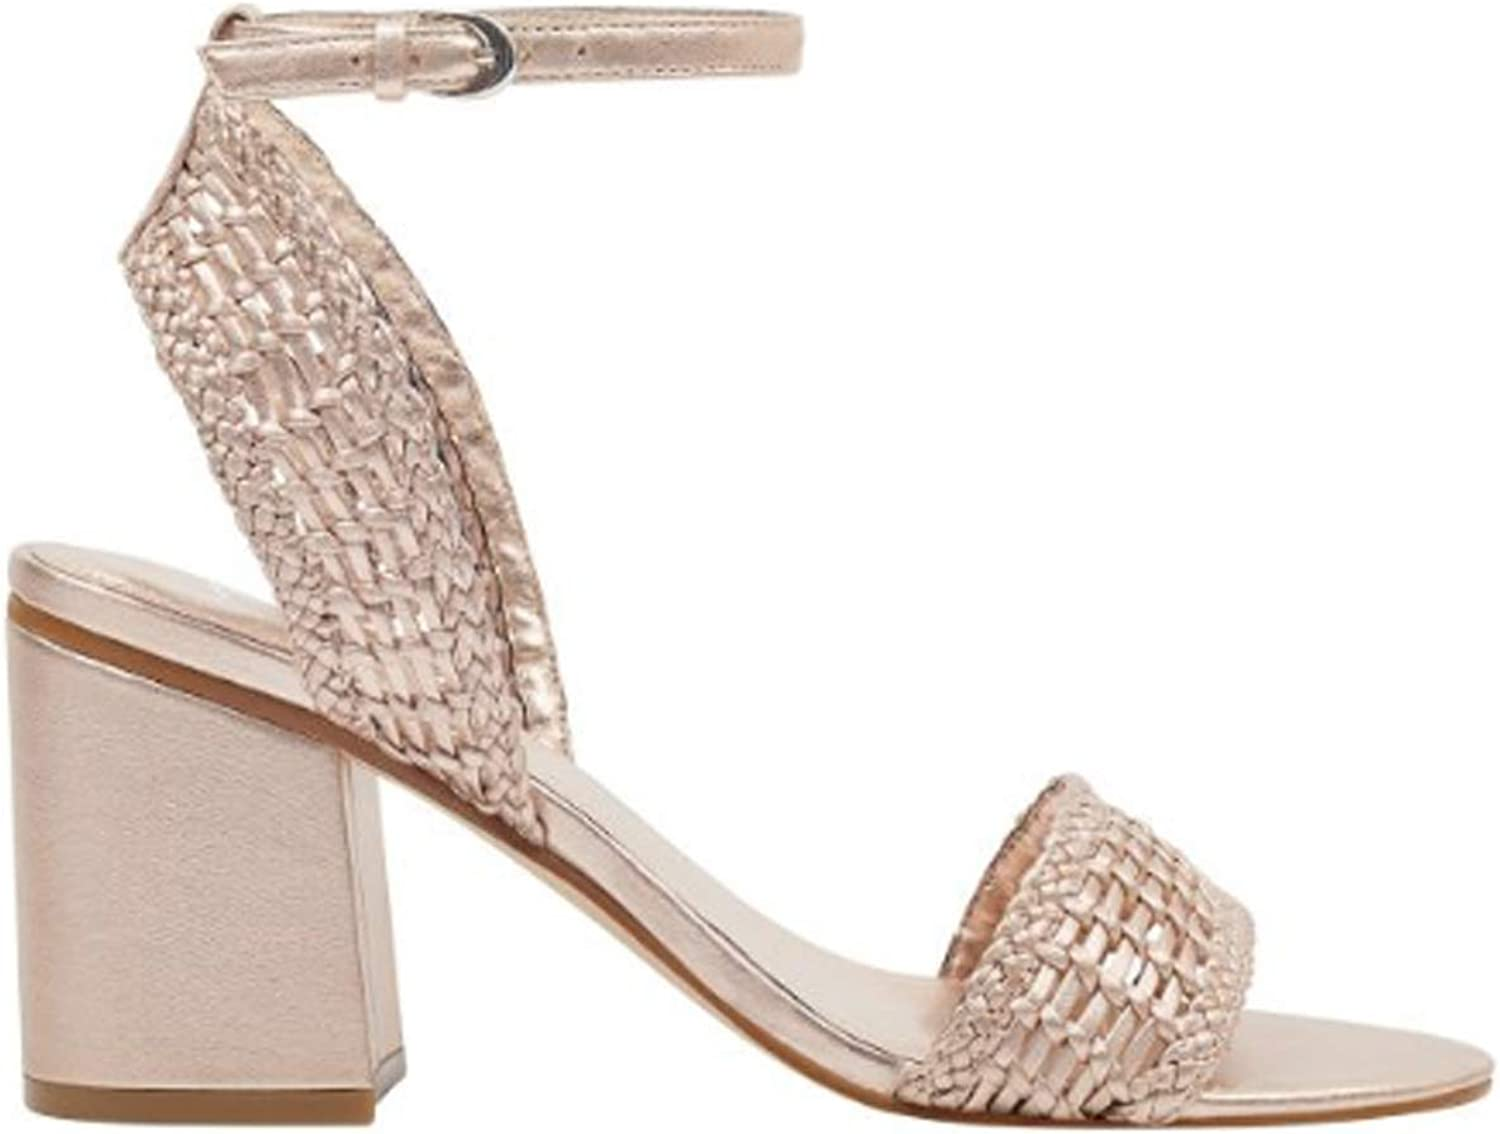 Marc Fisher Womens Amere Ankle Strap Sandal Light Pink Leather 9.5